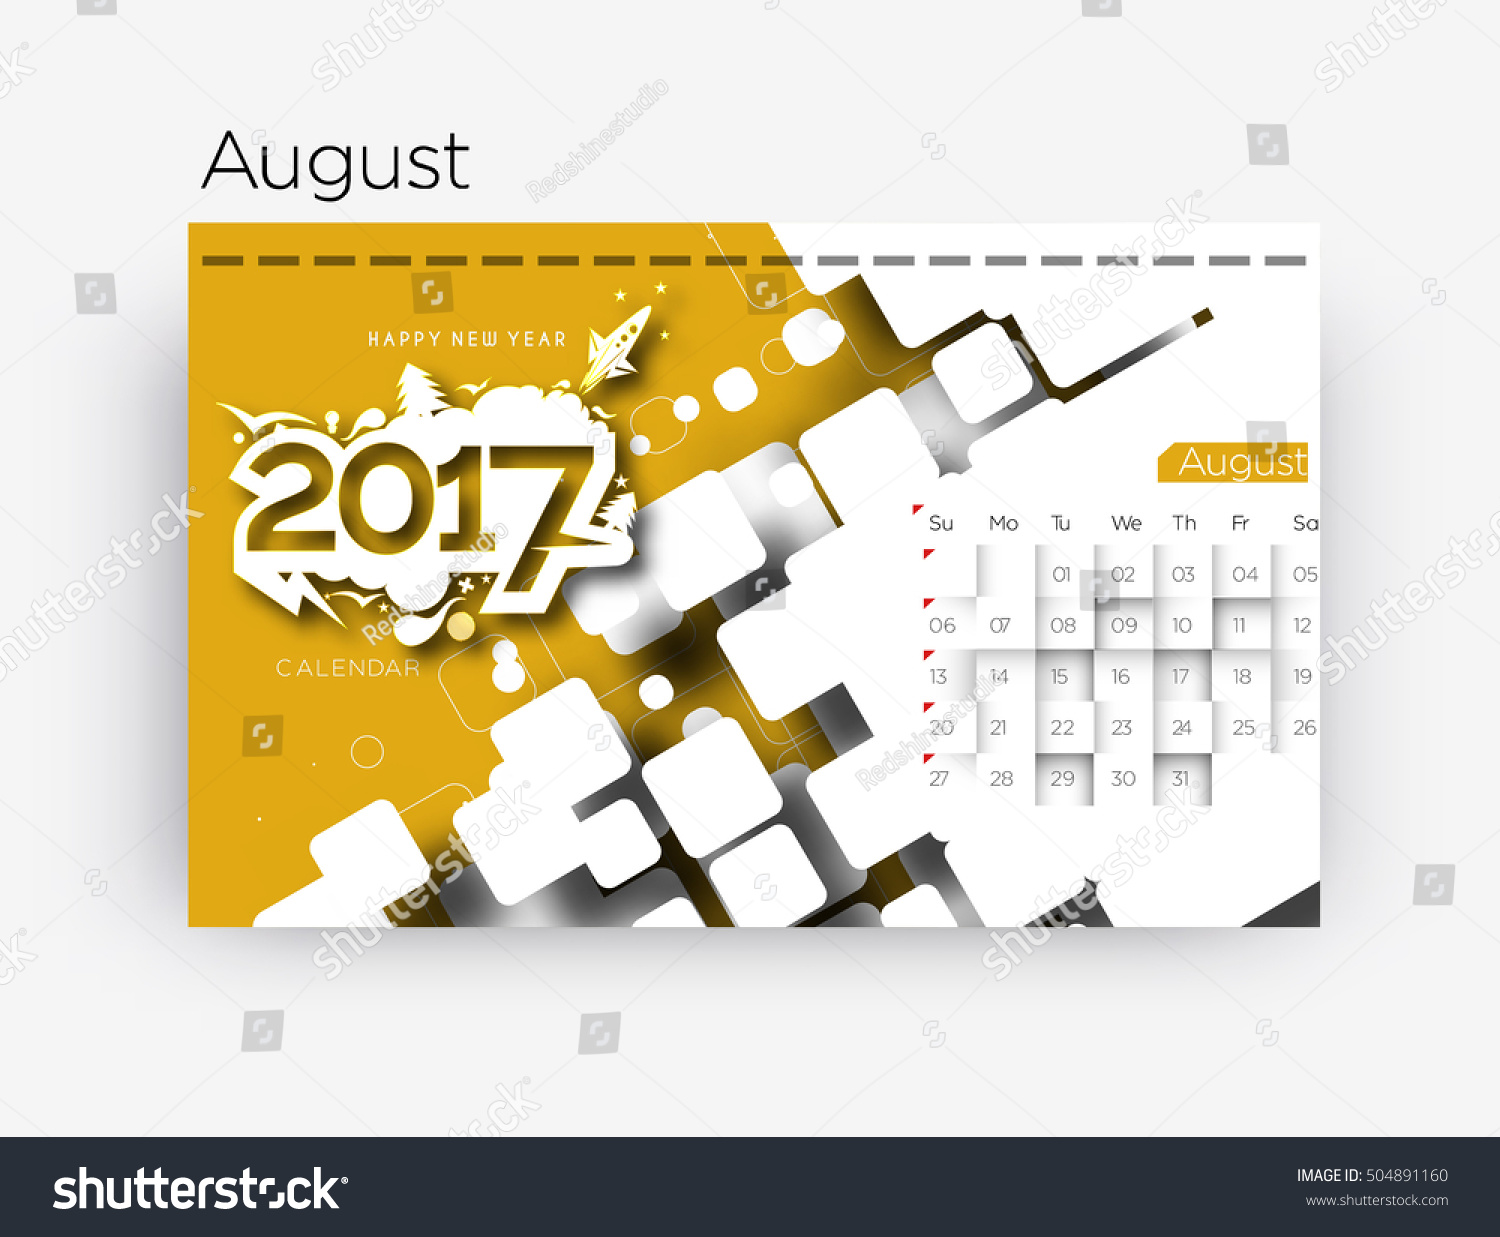 Happy New Year 2017 August Calendar   New Year Holiday Design Elements For  Holiday Cards,